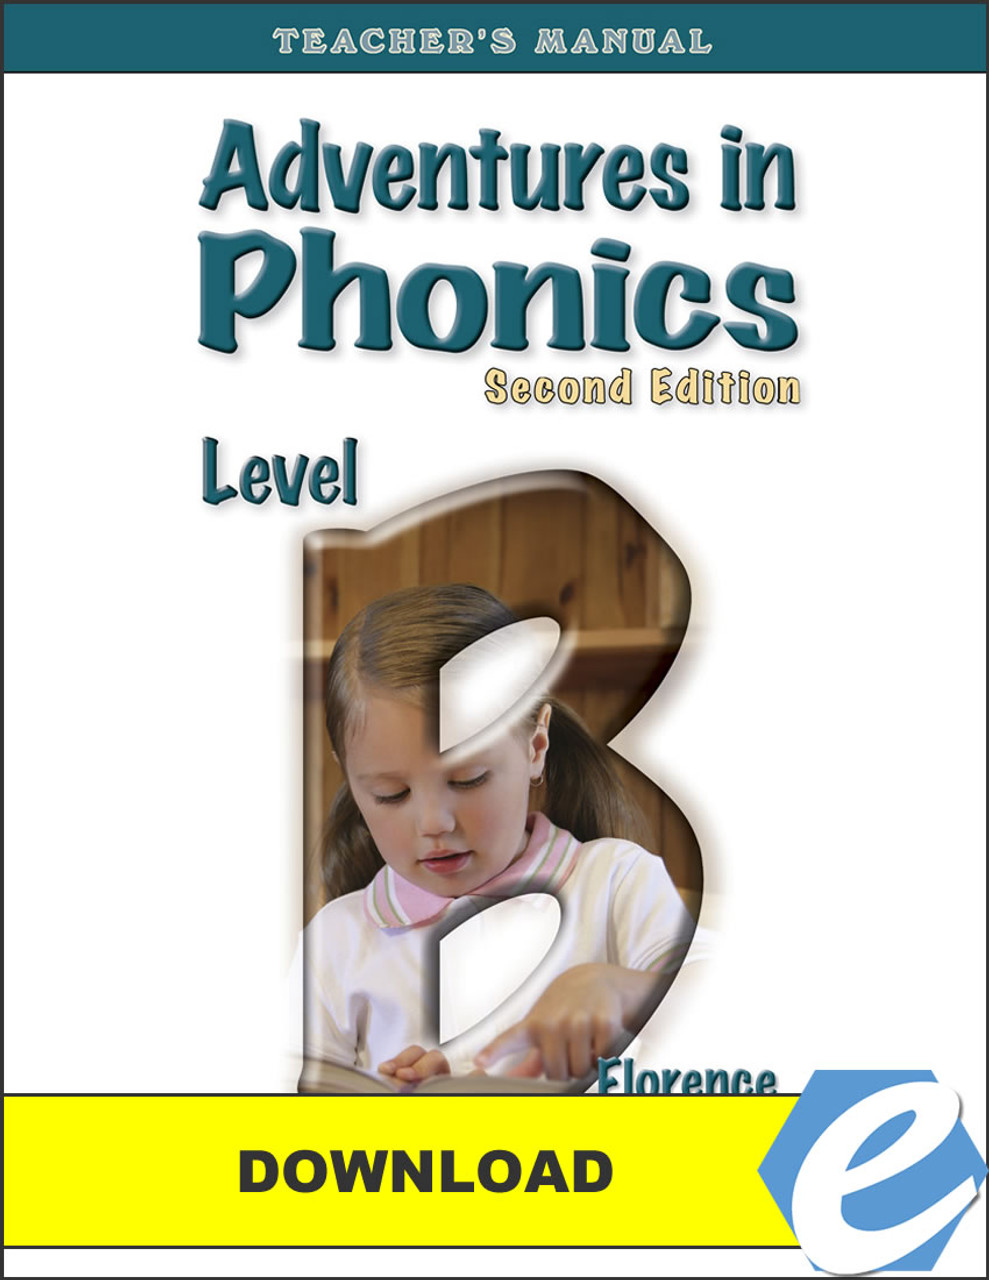 Adventures in Phonics: Level B, 2nd edition - Teacher's Manual - PDF Download